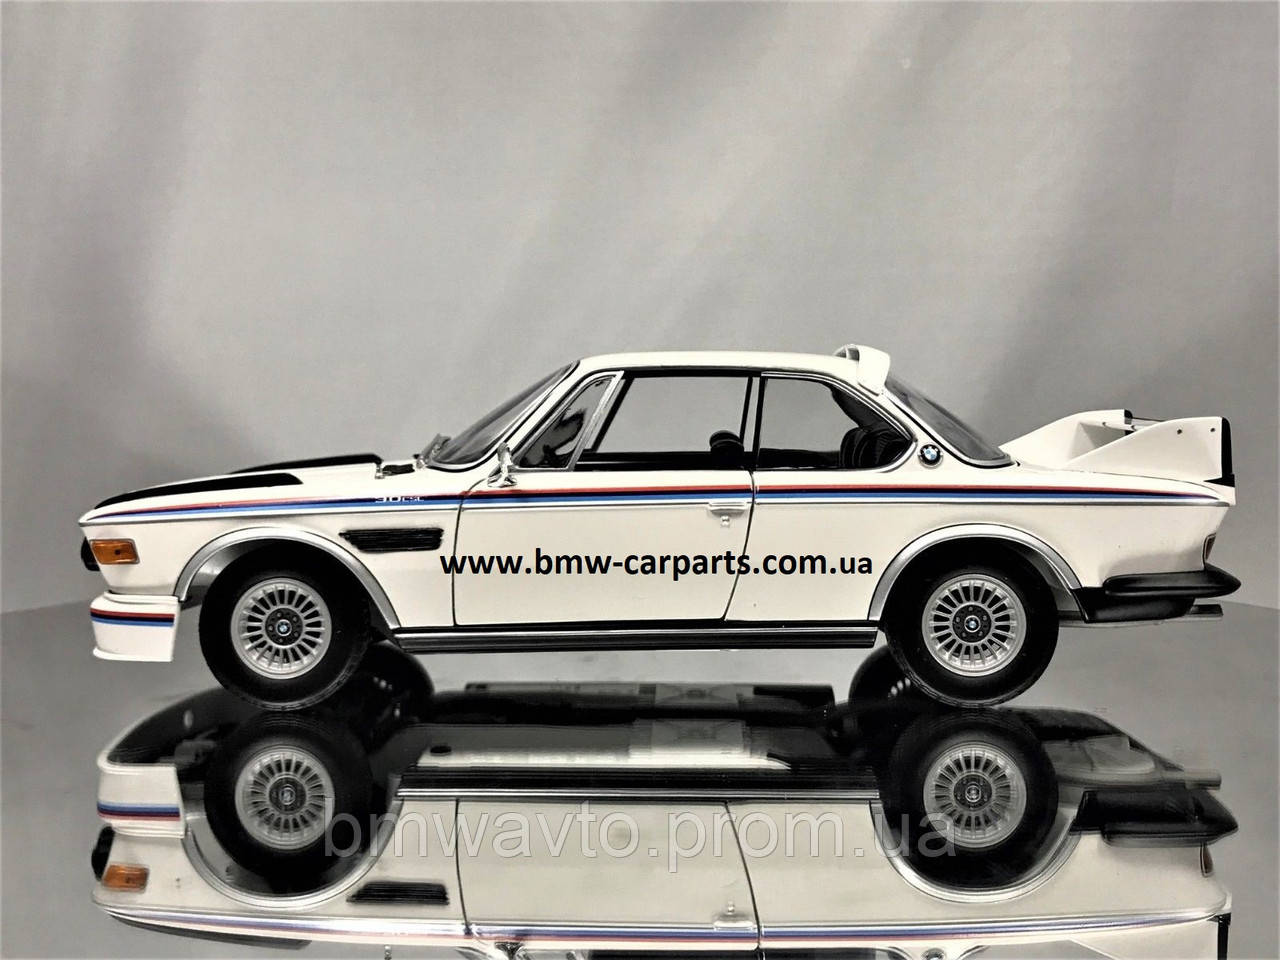 Коллекционная модель BMW 3.0 CSL, Heritage Collection, 1:18 scale, Motorsport